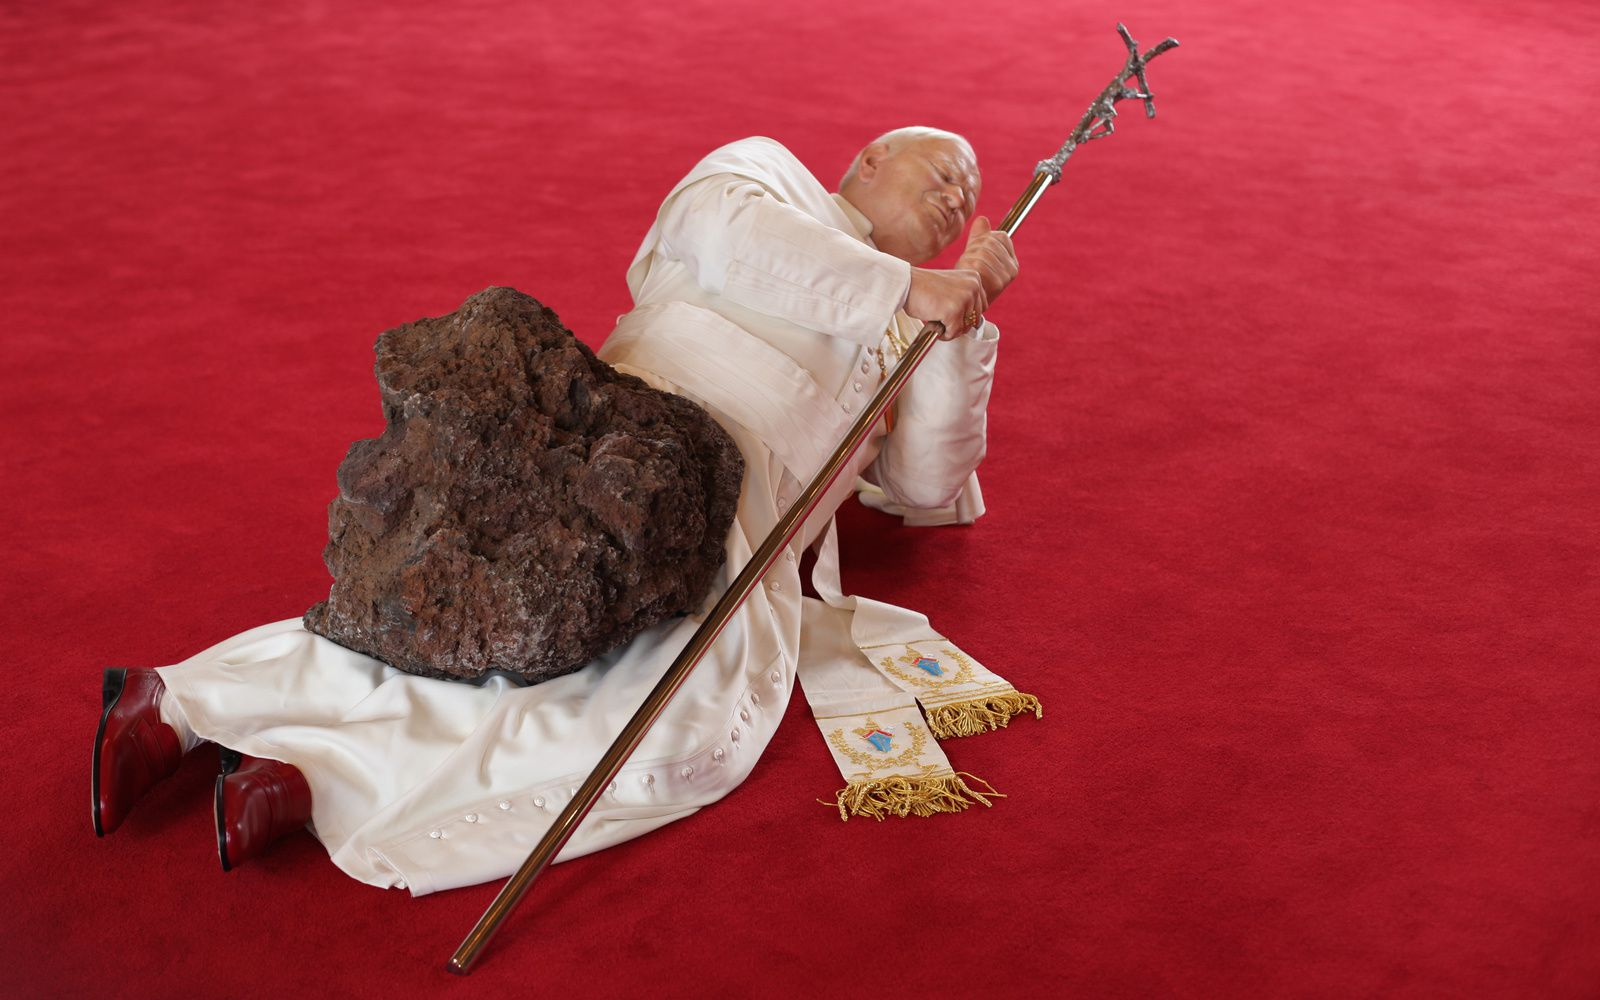 """La Nona Ora"", 1999 de Maurizio CATTELAN - Courtesy Archives Cattelan © Photo Éric Simon"